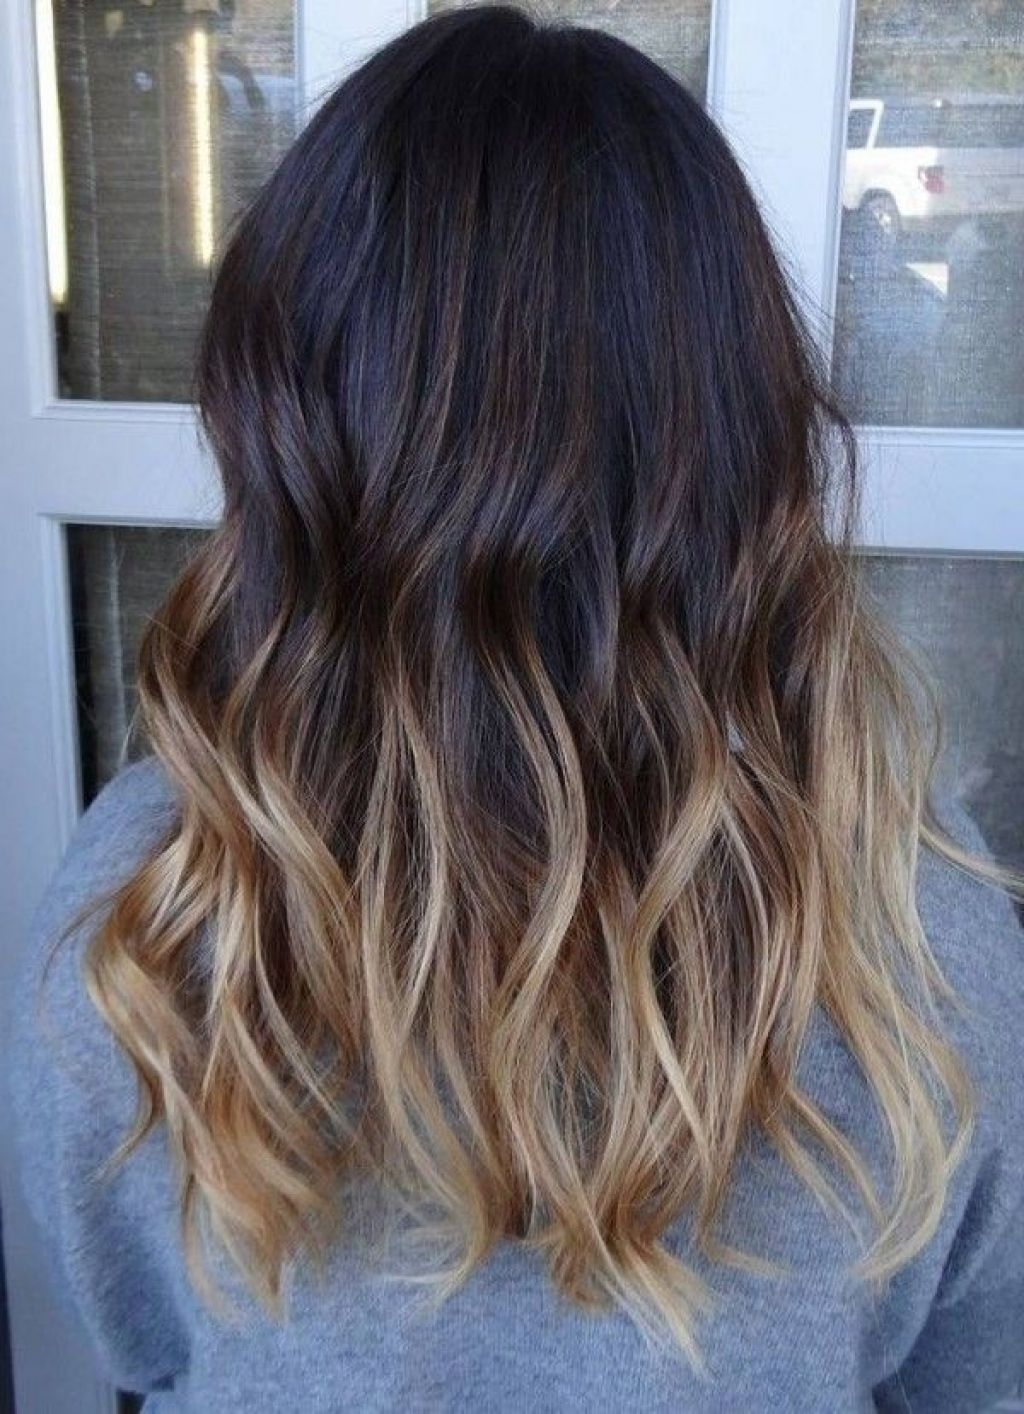 Ombre Hair Color For Medium Hair Medium Hair Ombre Highlights Inspiration Women Hairstyle Trendy